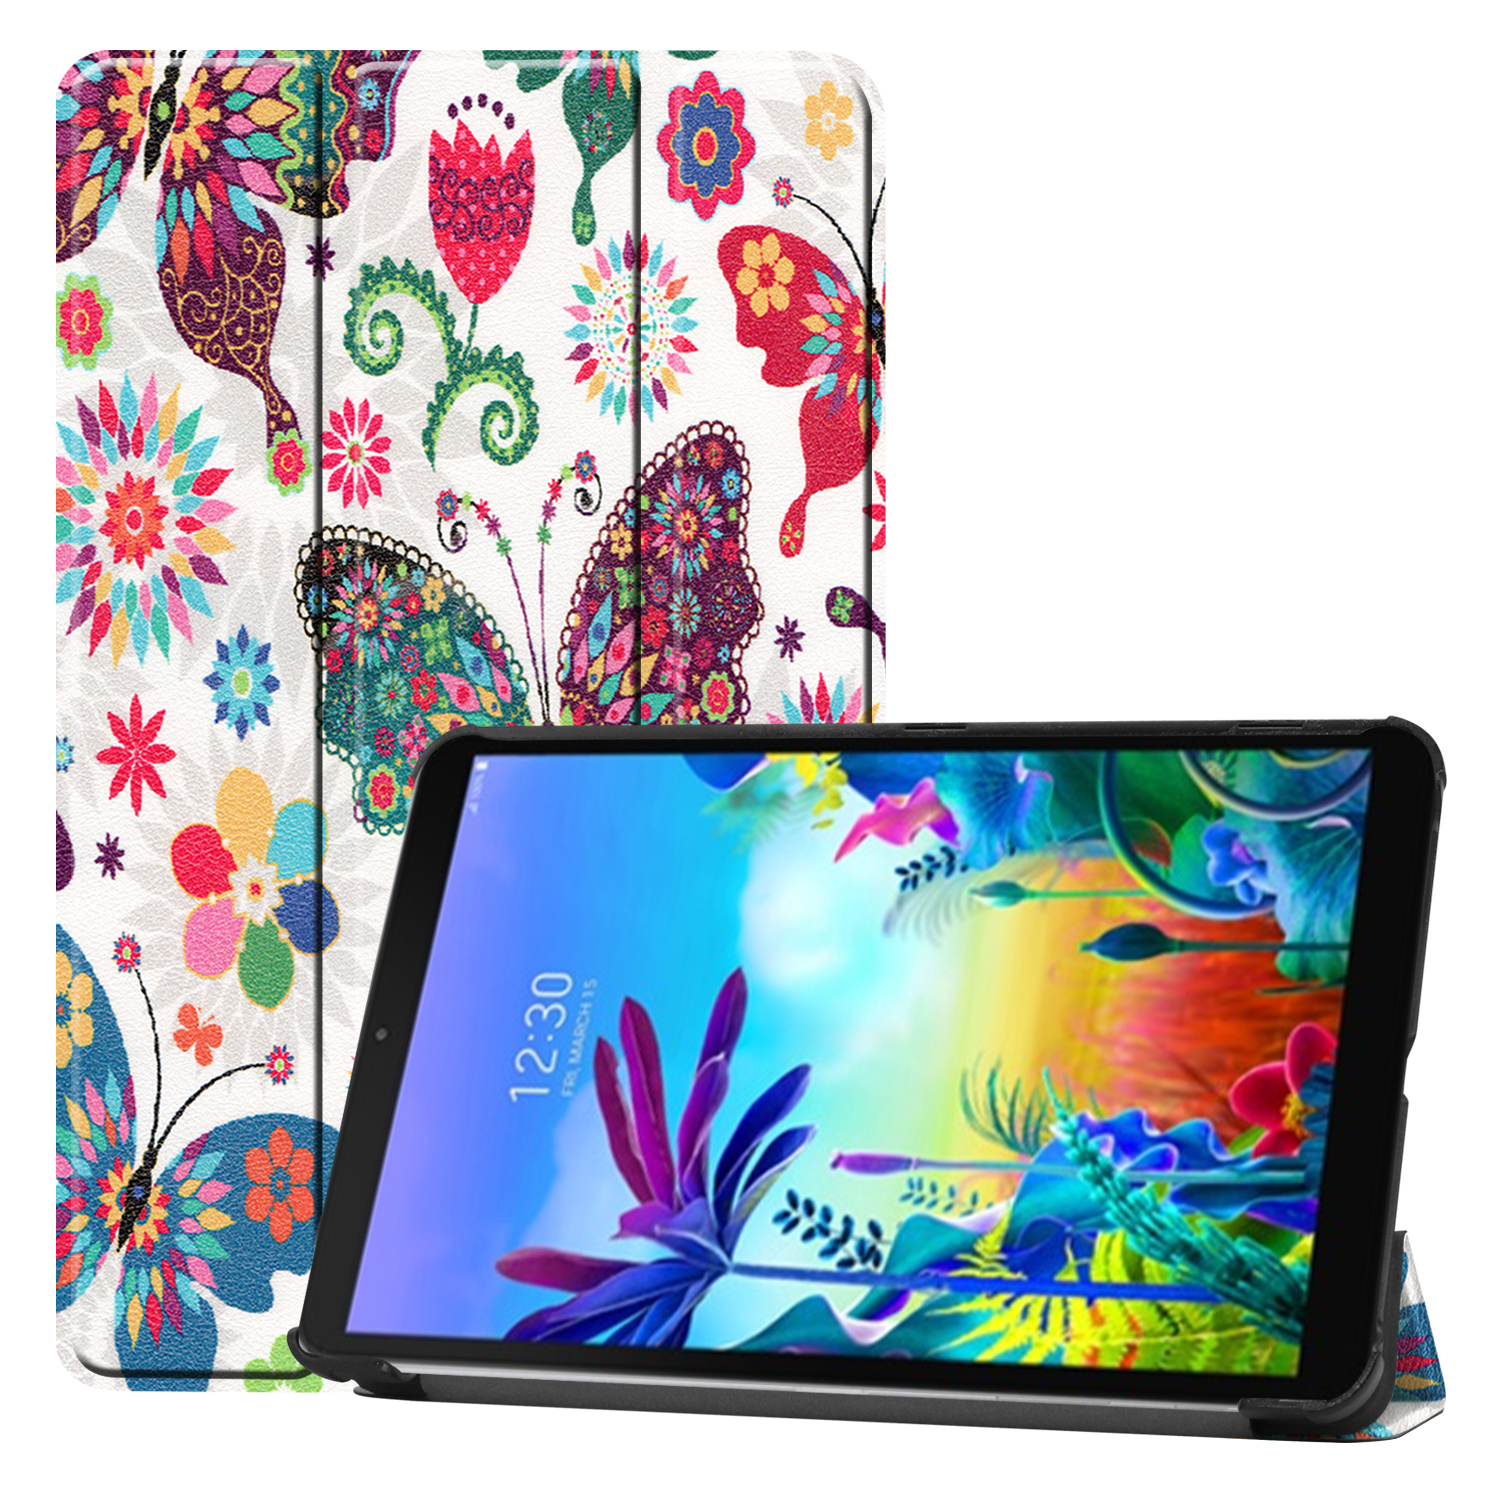 """PU Leather Case For LG G Pad 5 10.1"""" FHD LM-T600L Slim Magnetic Folding cover case for G Pad 5 10 inch"""